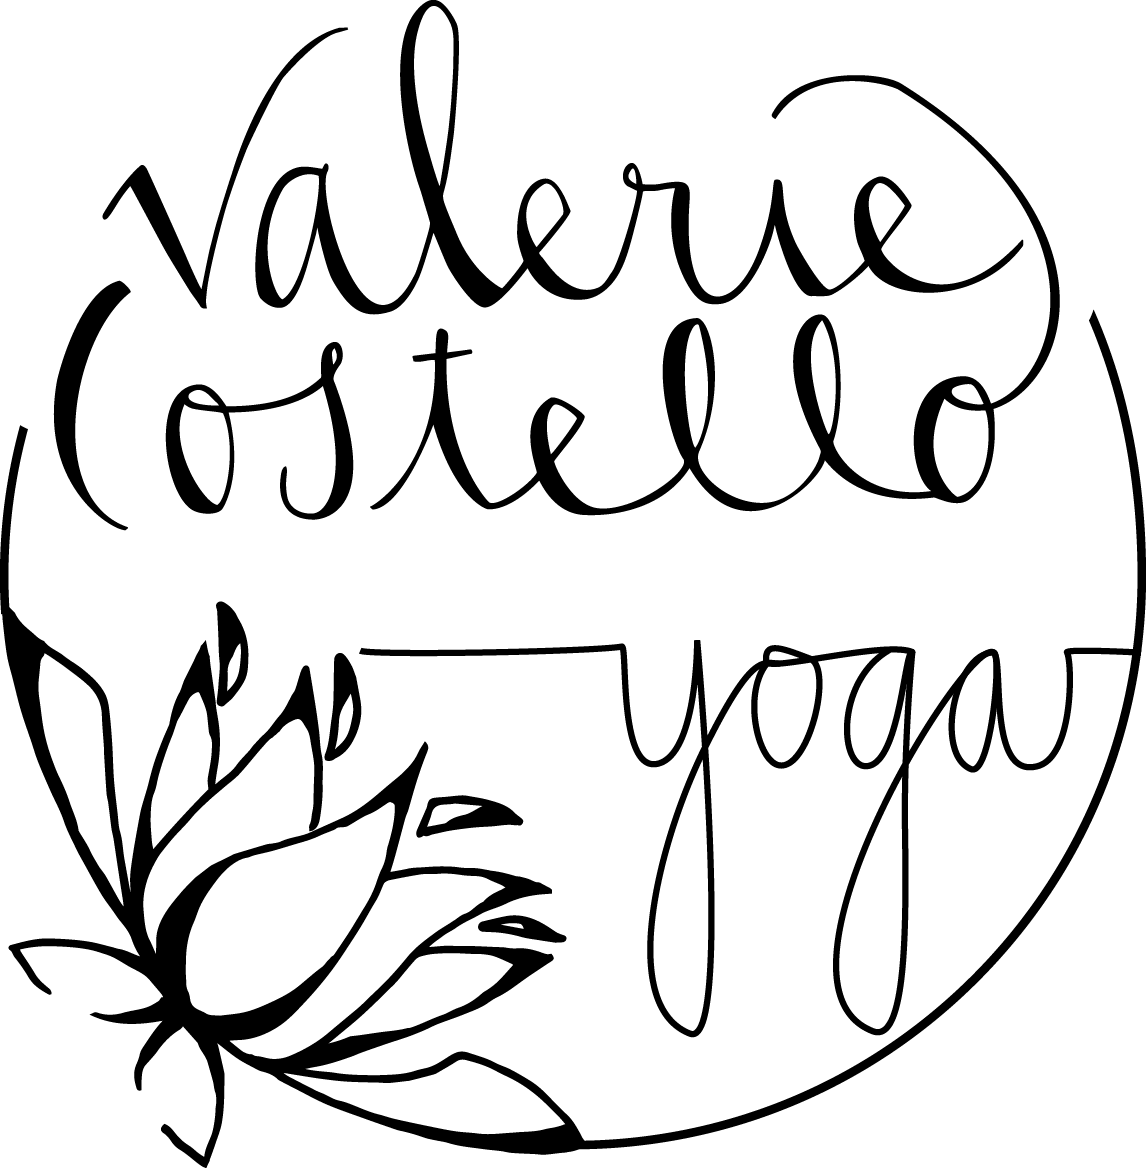 Mindfulness drawing yoga. Valerie costello fitness